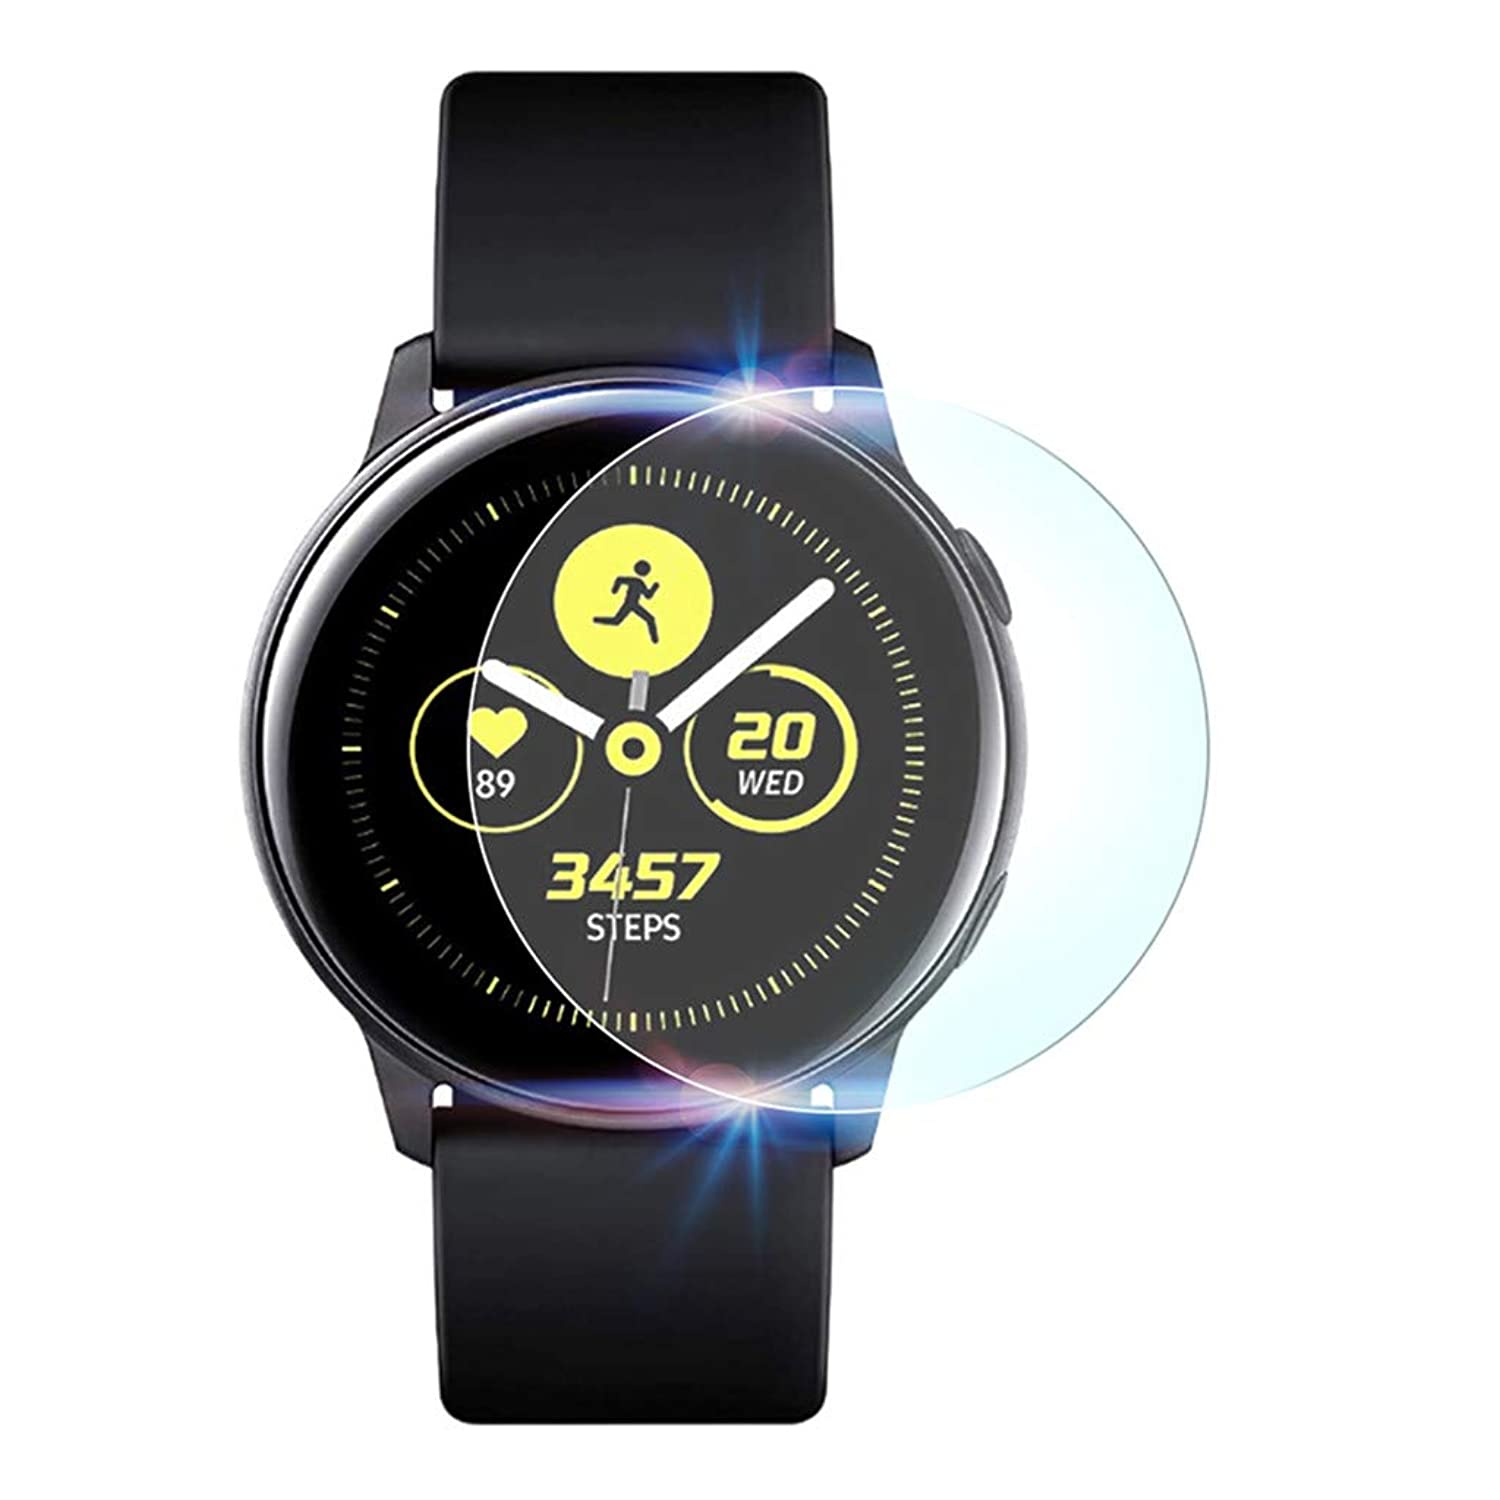 Samsung Galaxy Watch Active bandのためのスクリーンプロテクターアクティブ、Redvive 2pcs防爆TPU /強化ガラス/ペットスクリーンプロテクターフィルム